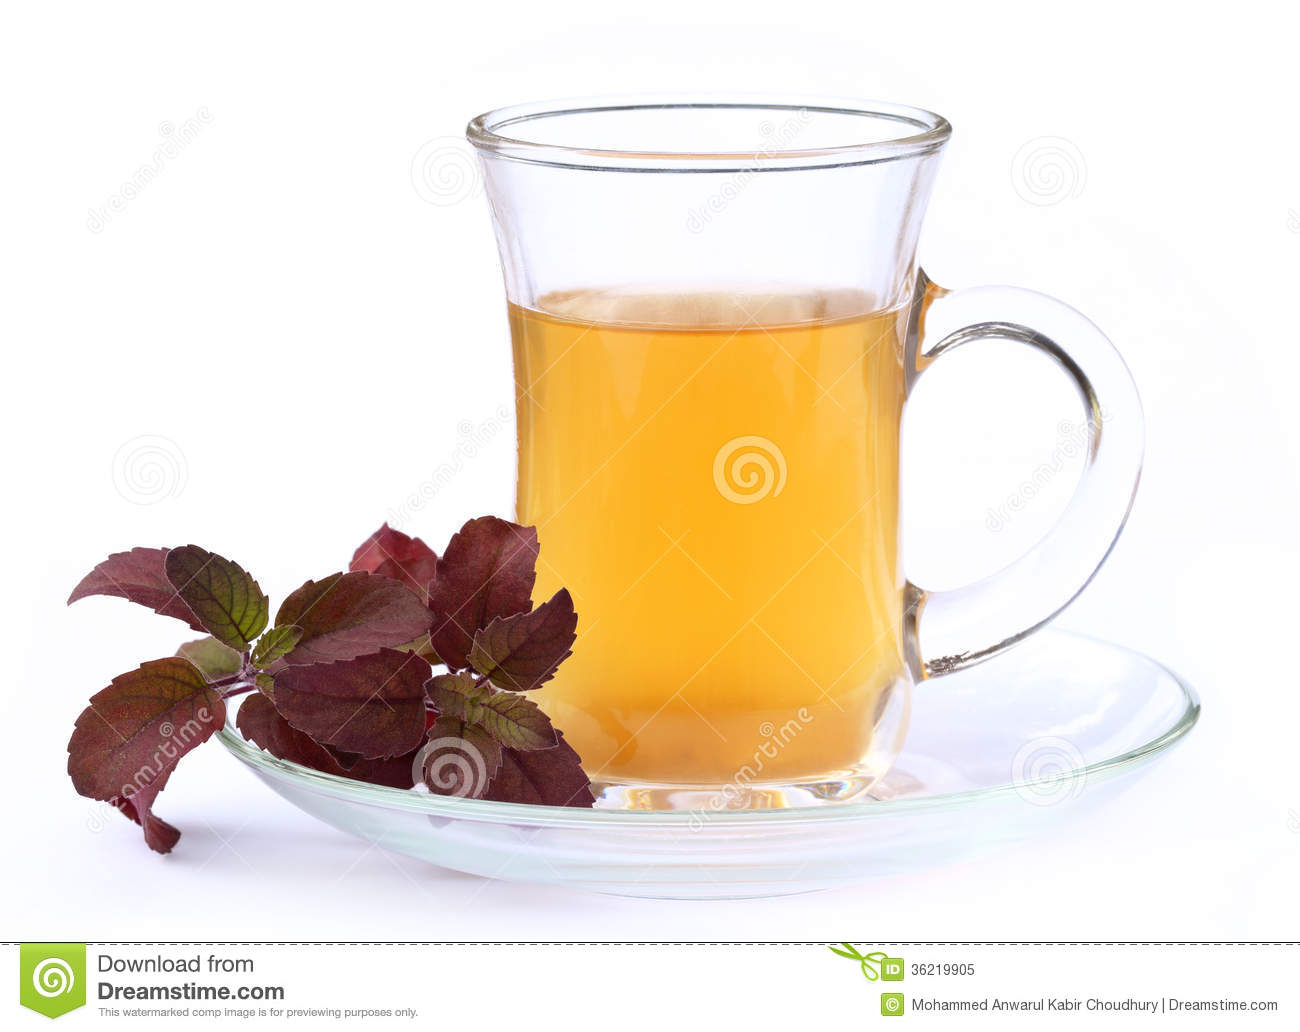 Cup of herbal tea with red tulsi leaves